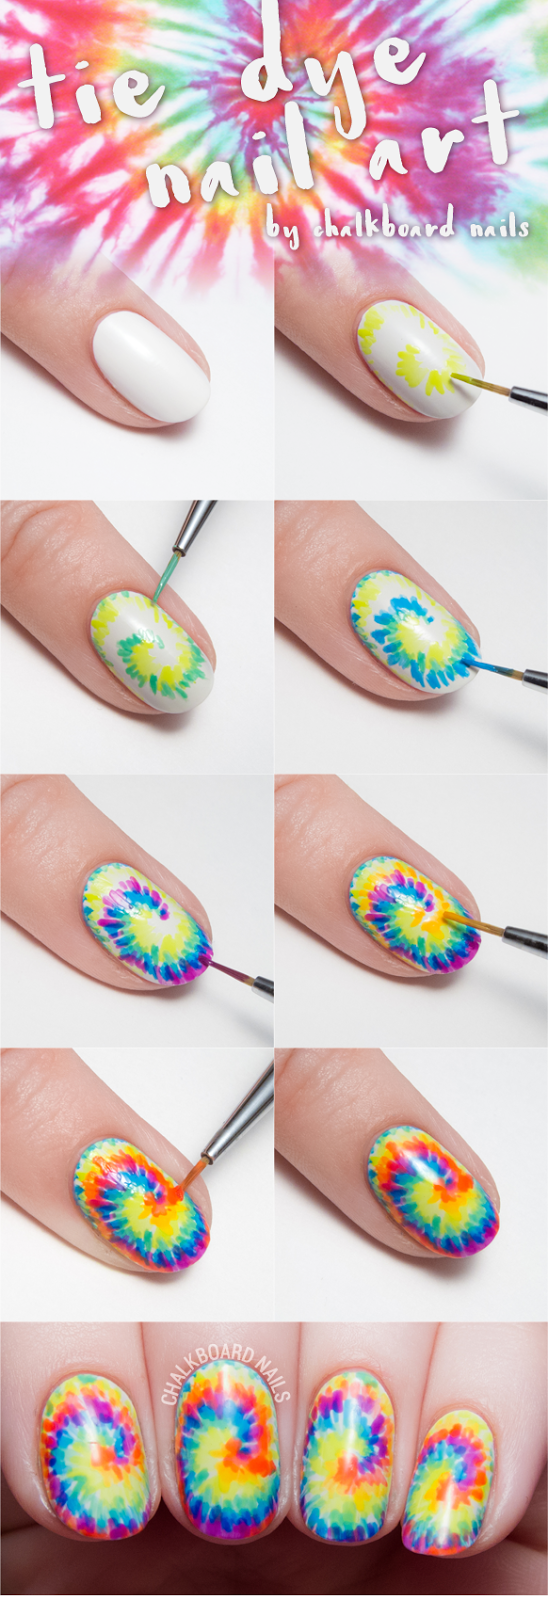 Tie dye nail art tutorial by @chalkboardnails - Fun DIY!